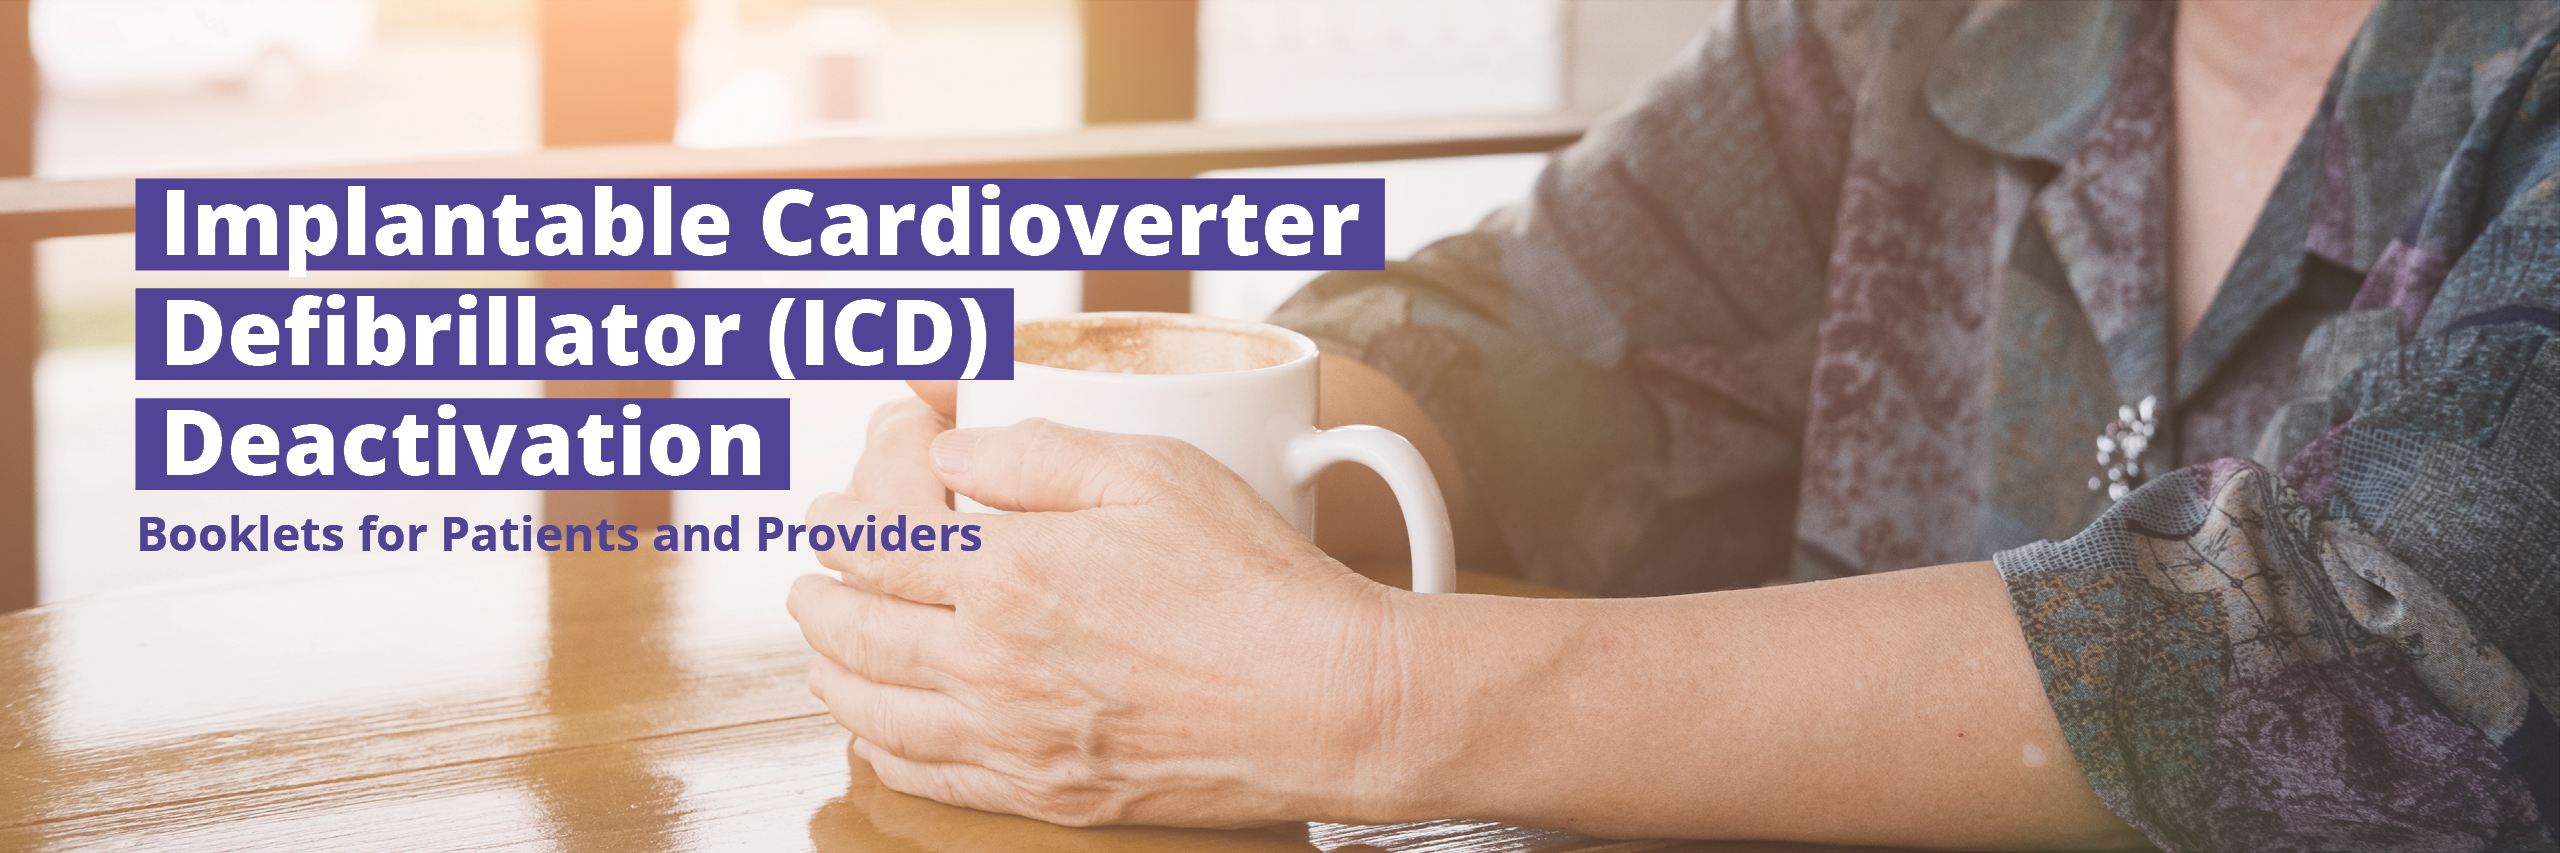 Implantable Cardioverter Defibrillator (ICD) Deactivation: Booklets for Patients and Providers. Mature women in dark floral shirt holding a white mug.